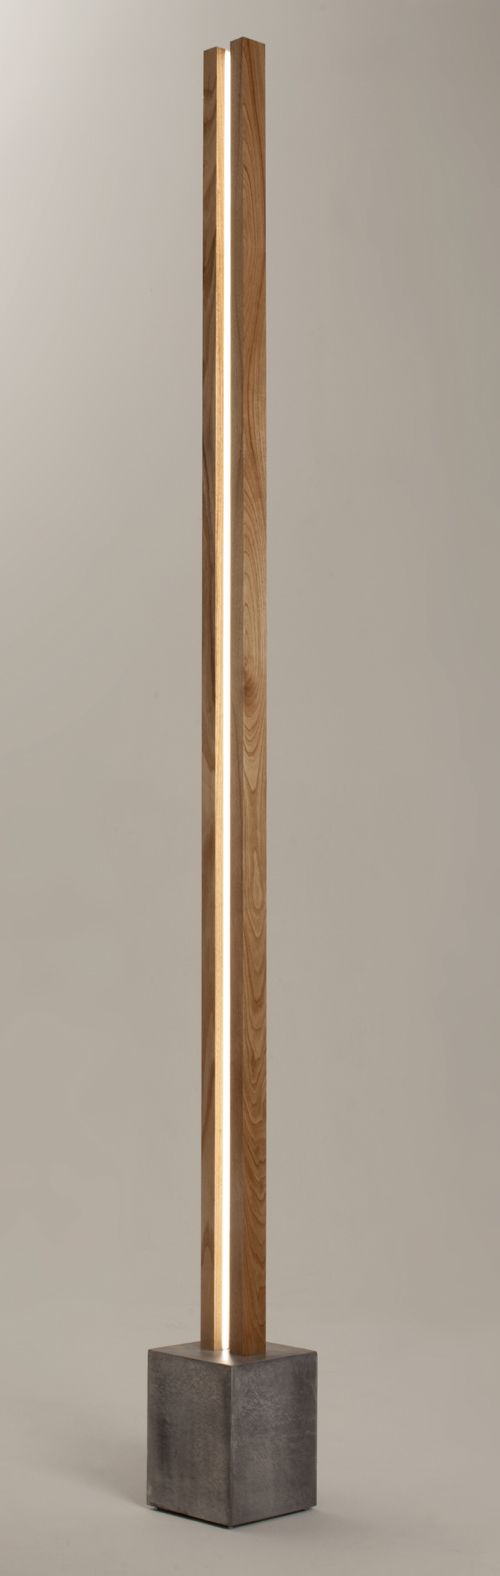 The Lubois : a floor lamp with a clear LED light strip inside a vertical structure in wood